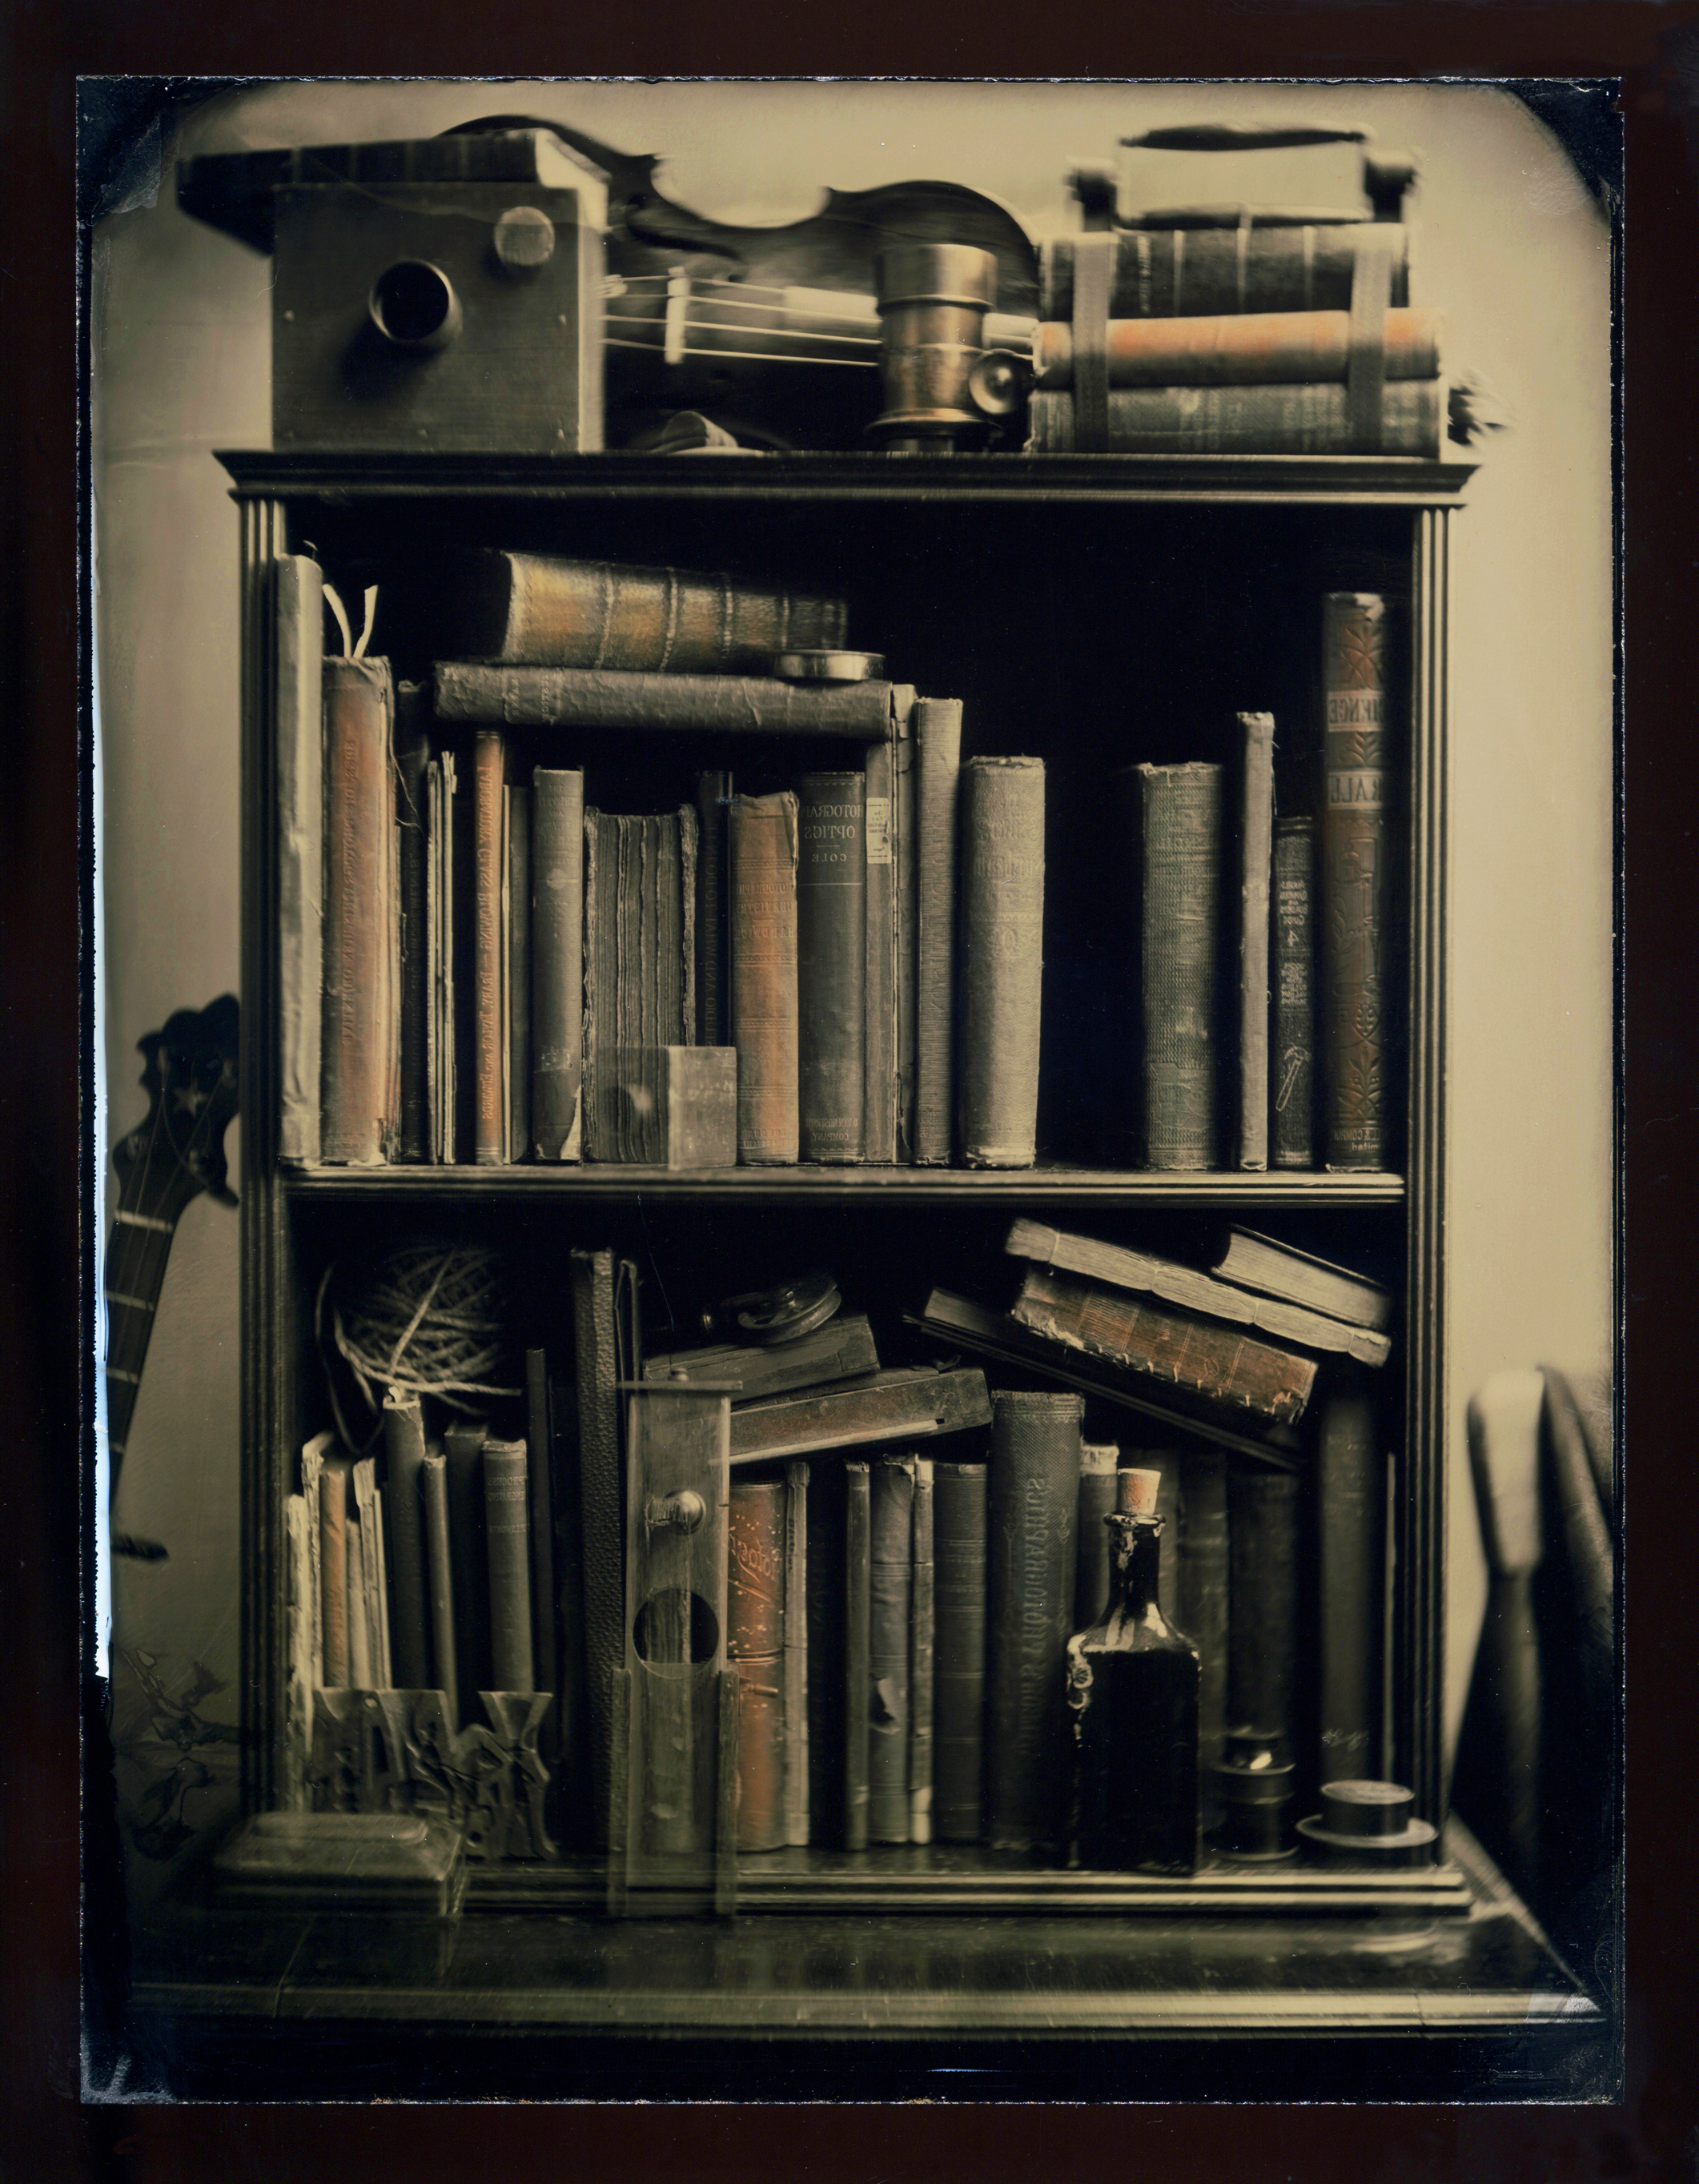 Mark Osterman 's library in collodion.  Unreturned  from the series  Still Life , ambrotype